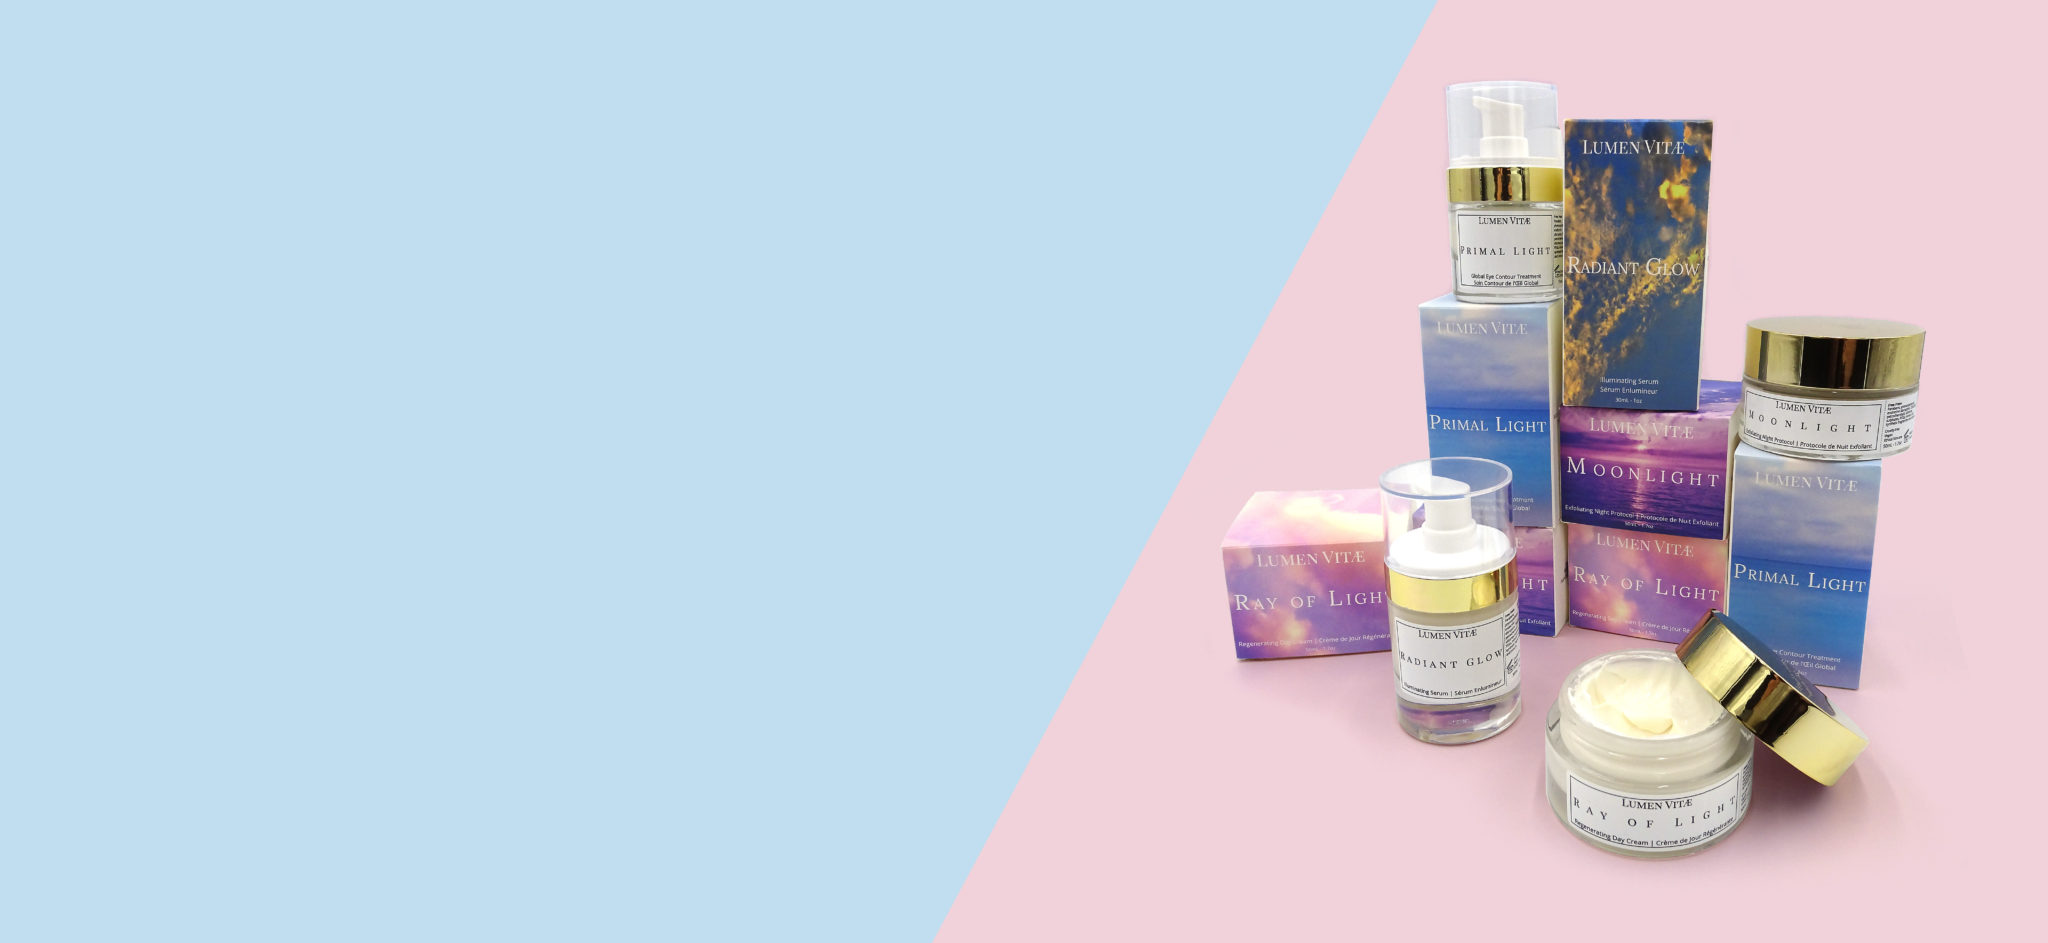 Pink and Blue Lumen Vitae Skincare banner